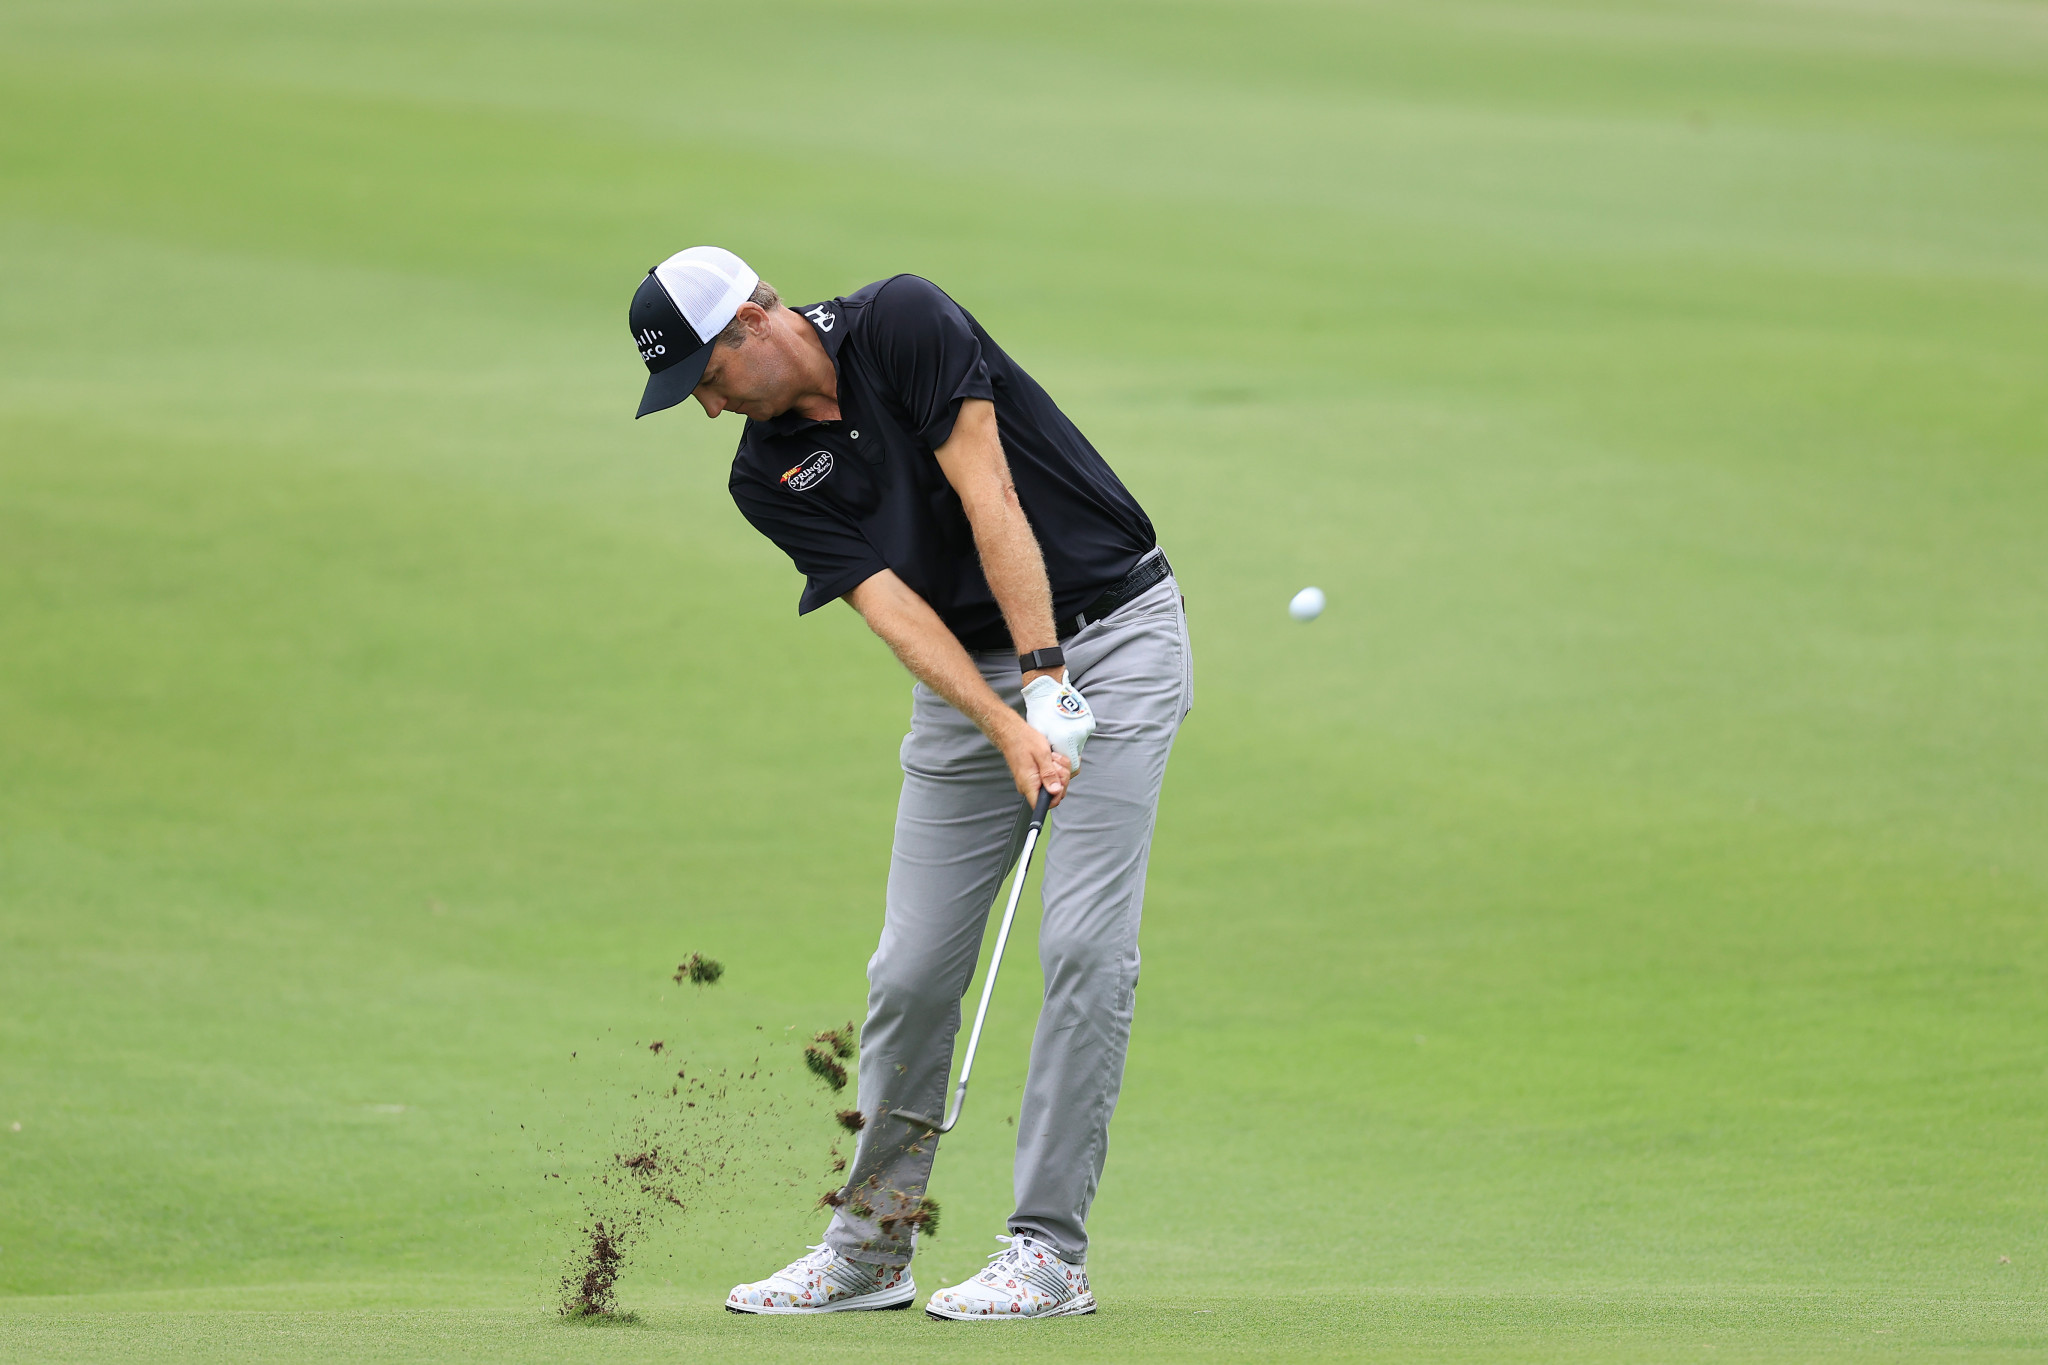 Todd's lead cut to one shot after round three of WGC-FedEx St. Jude Invitational